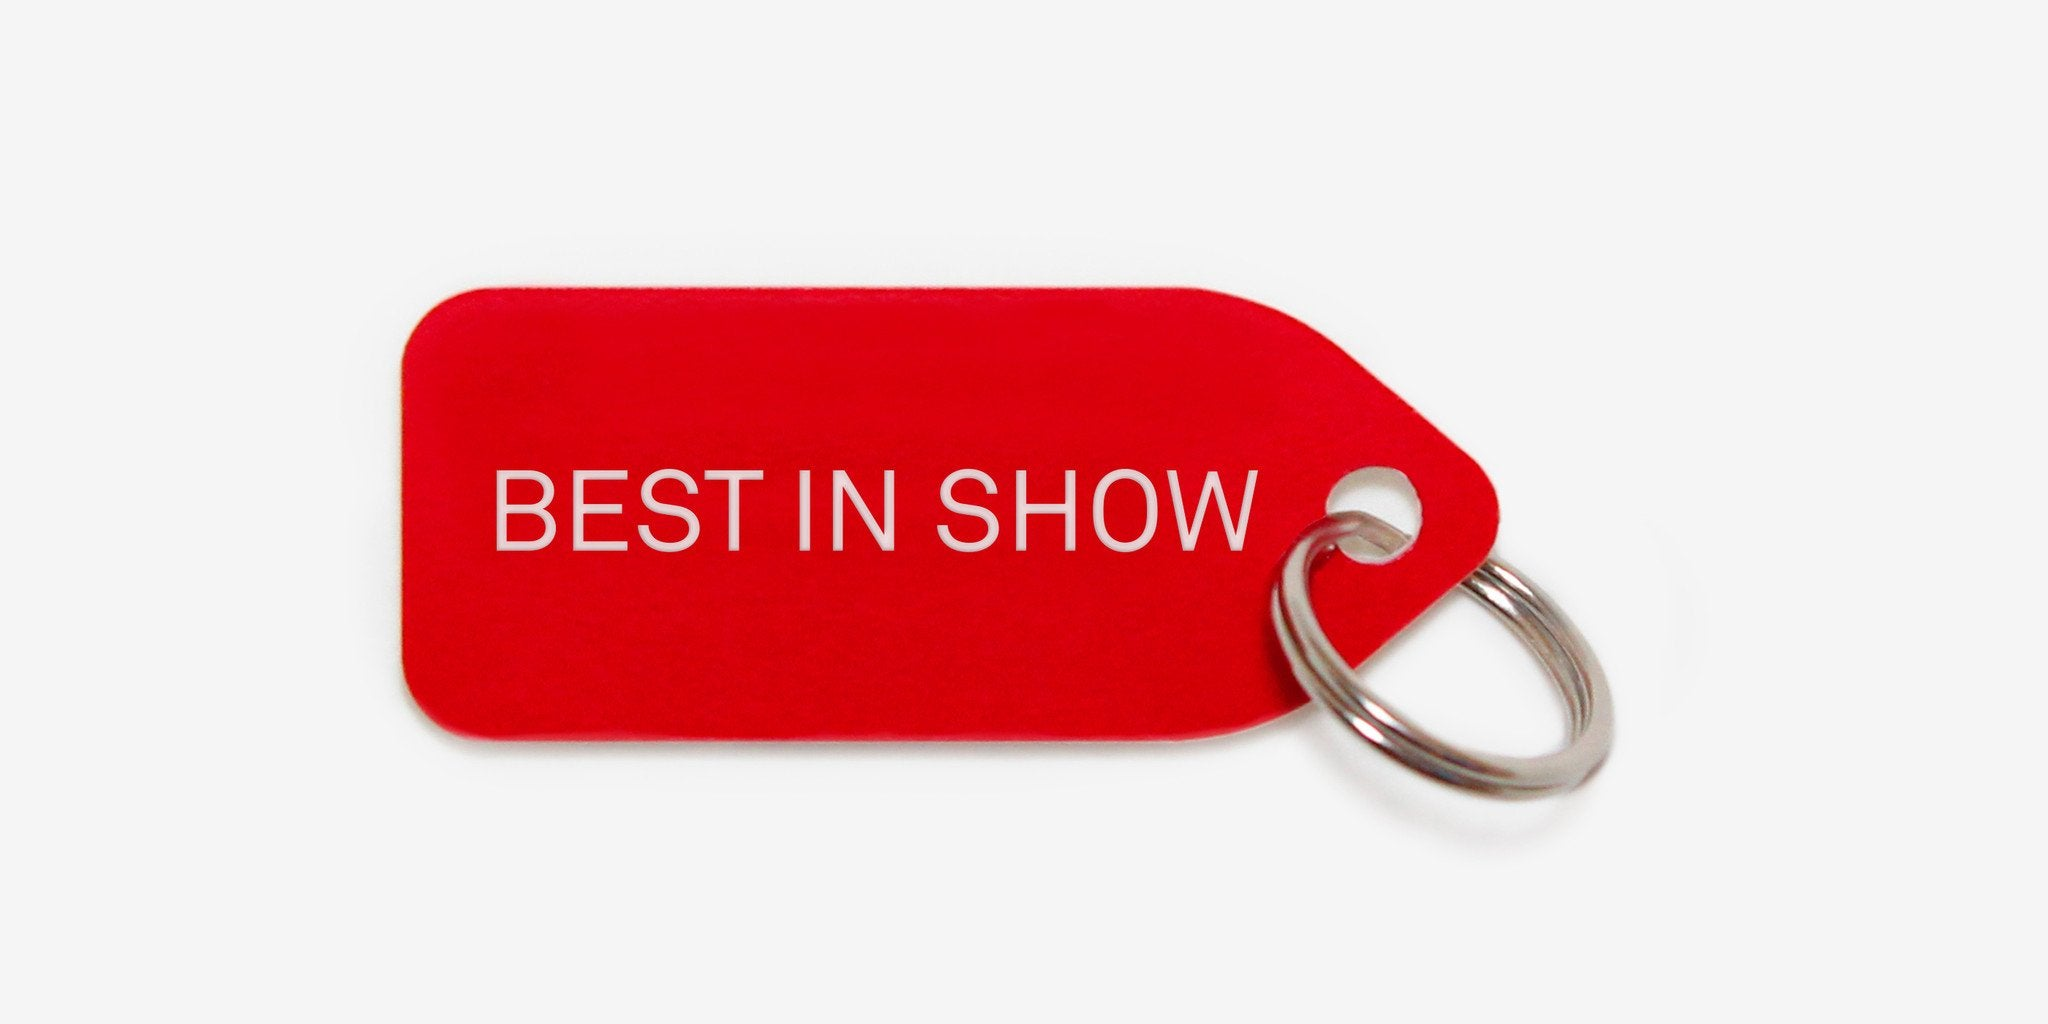 Dog tag | Collar charm - BEST IN SHOWDog tag - Best in Show